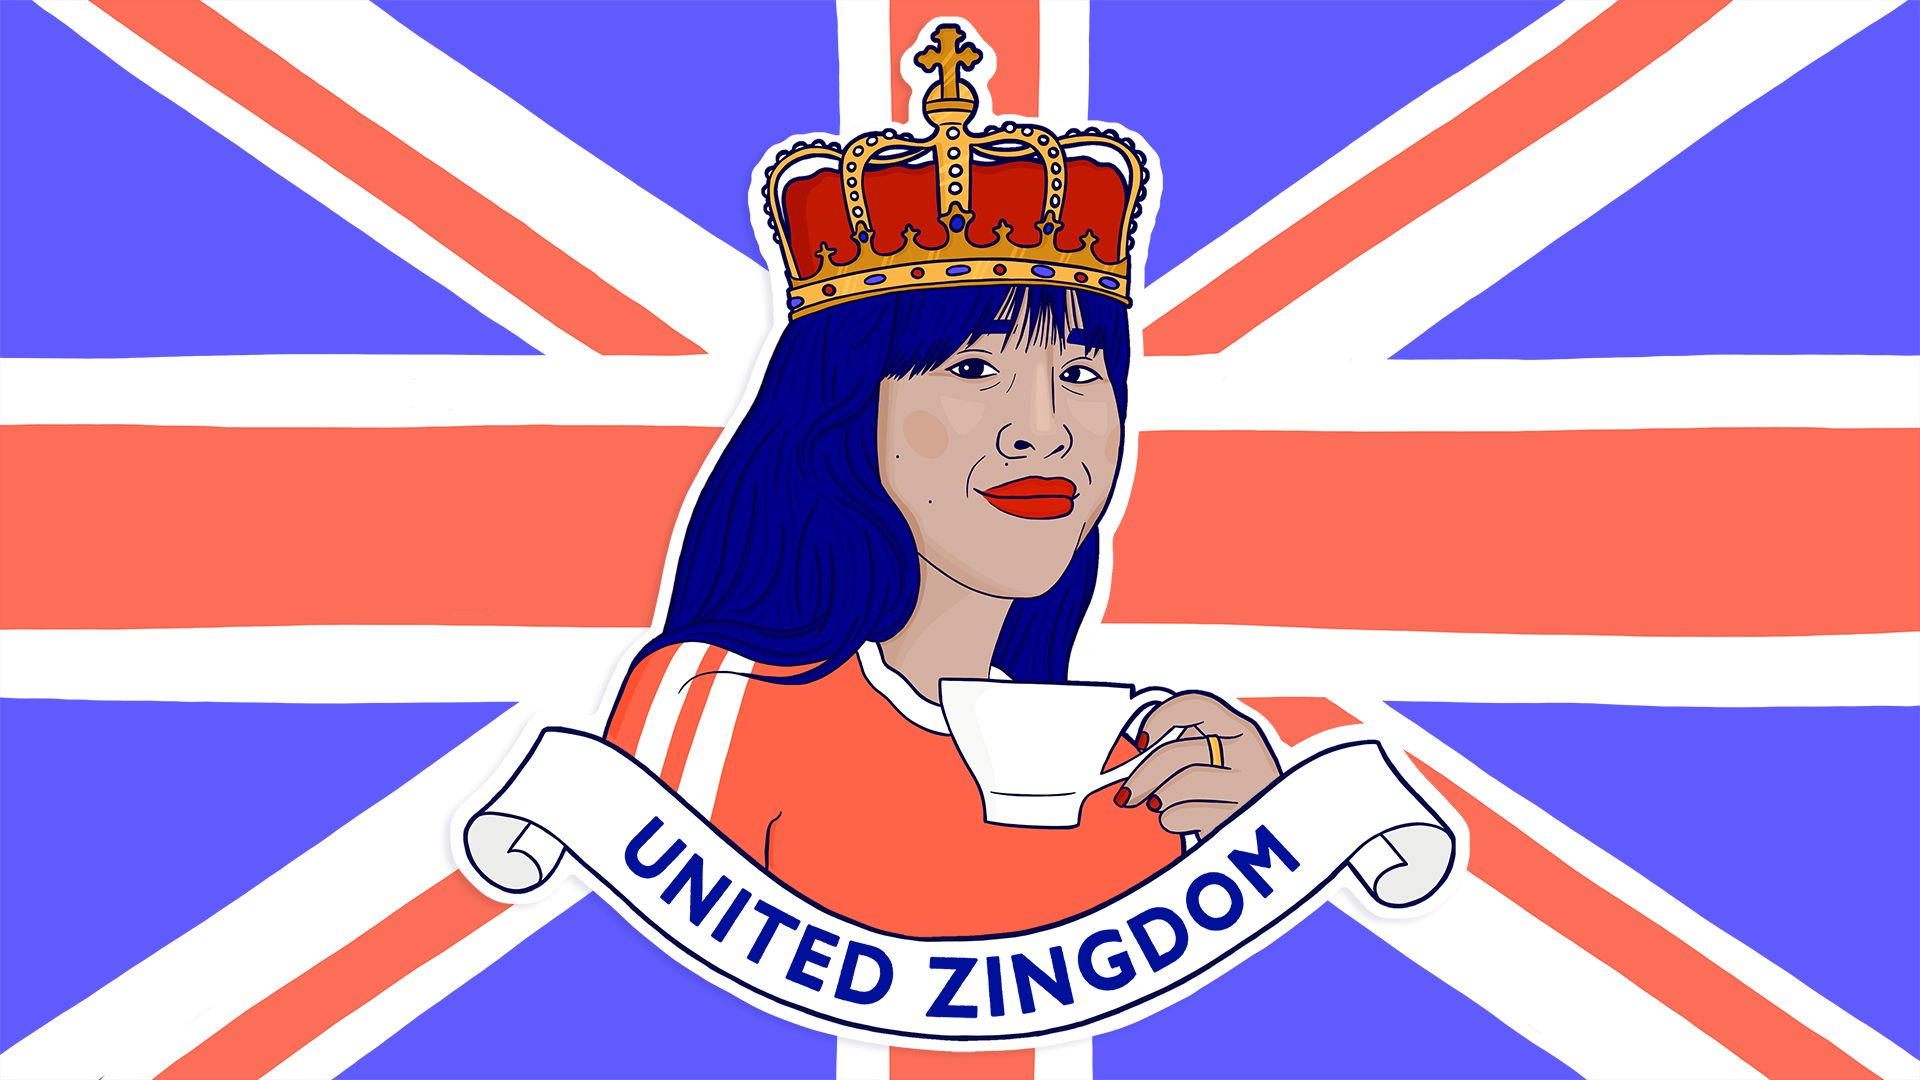 United Zingdom is the podcast that asks if British identity is worth severing ties with your home country